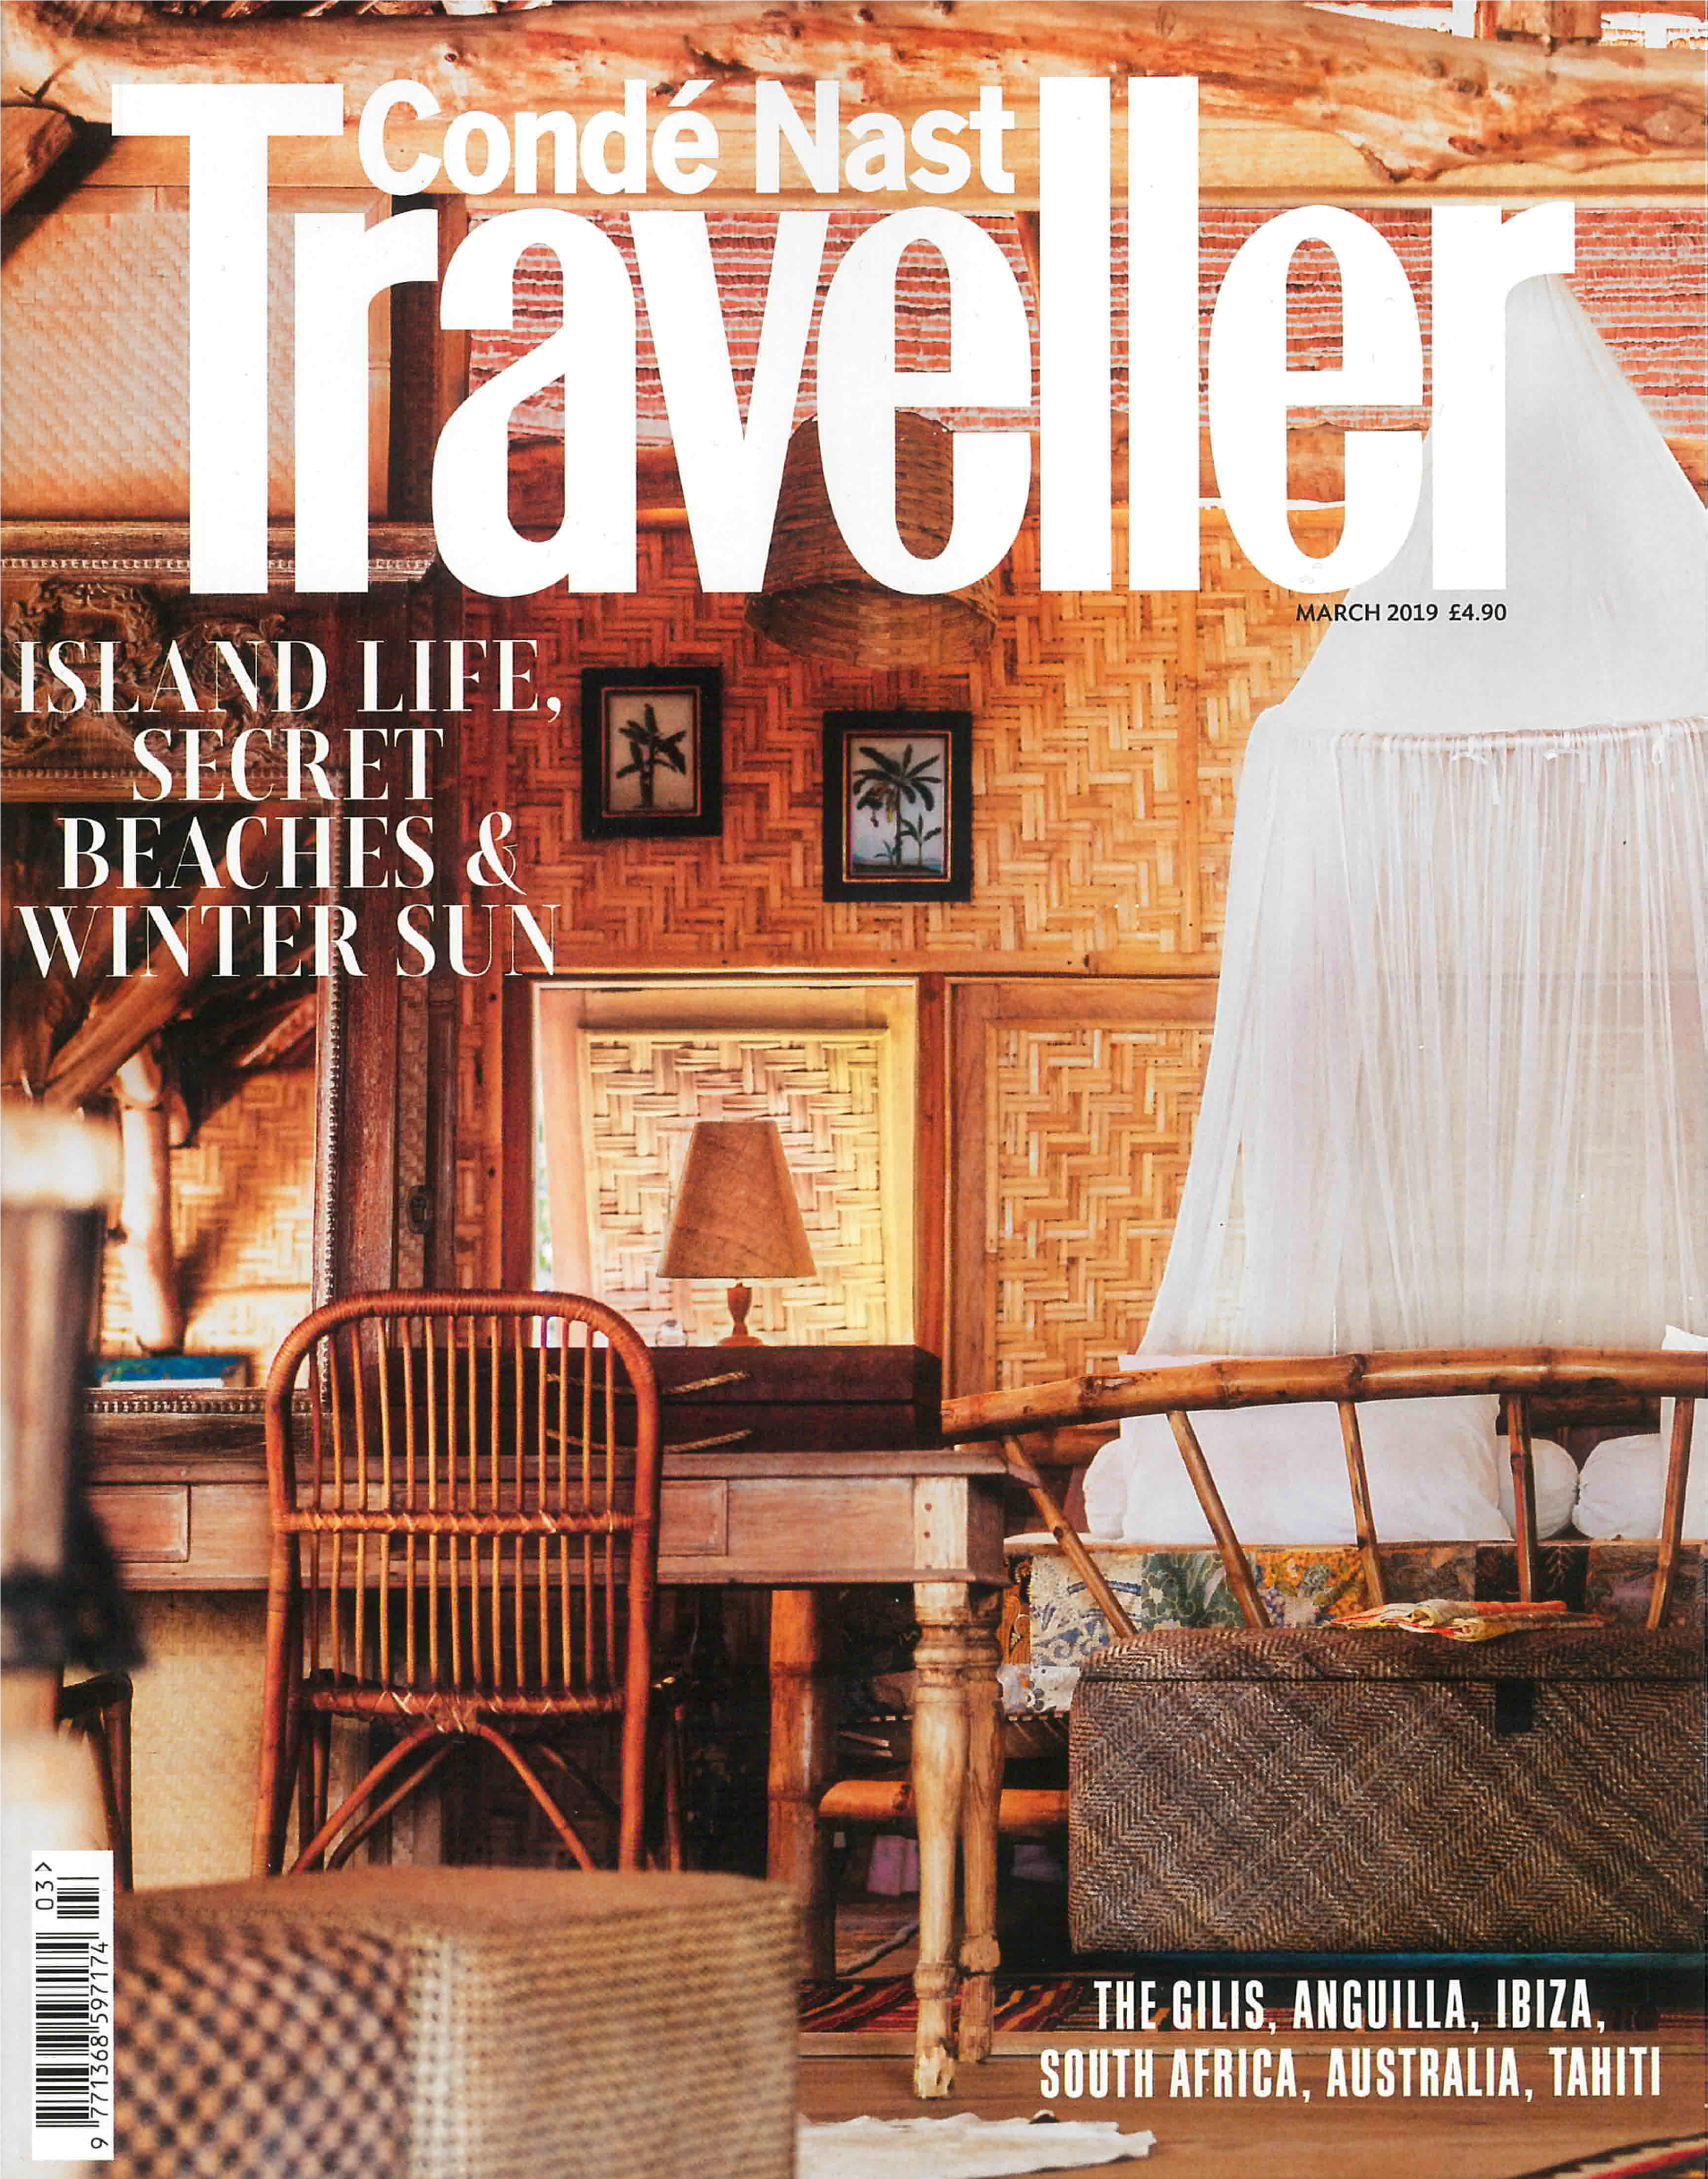 Conde Nast Traveller features amaiaa beauty's saya facial oil